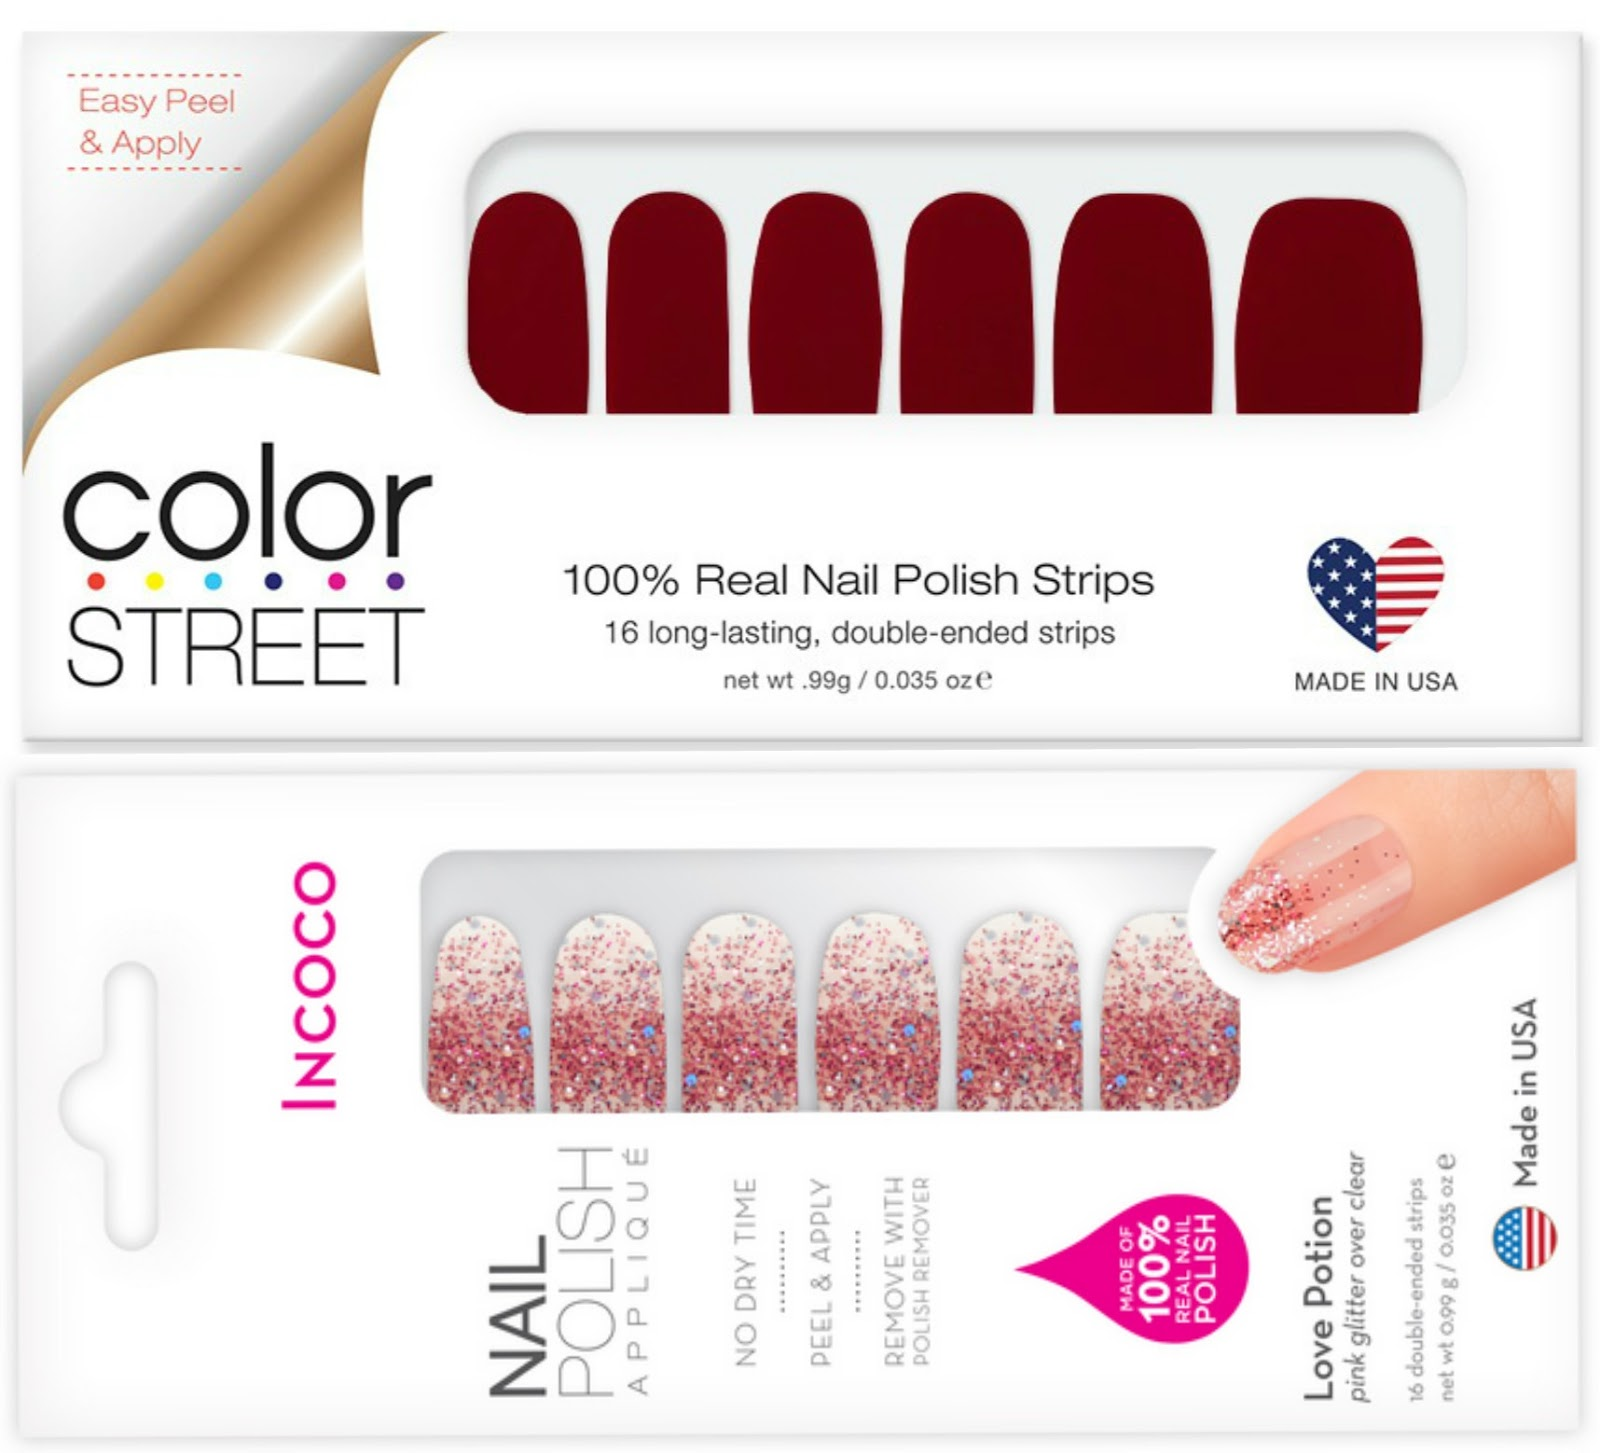 Beauty Blog by Angela Woodward: Color Street Exposed